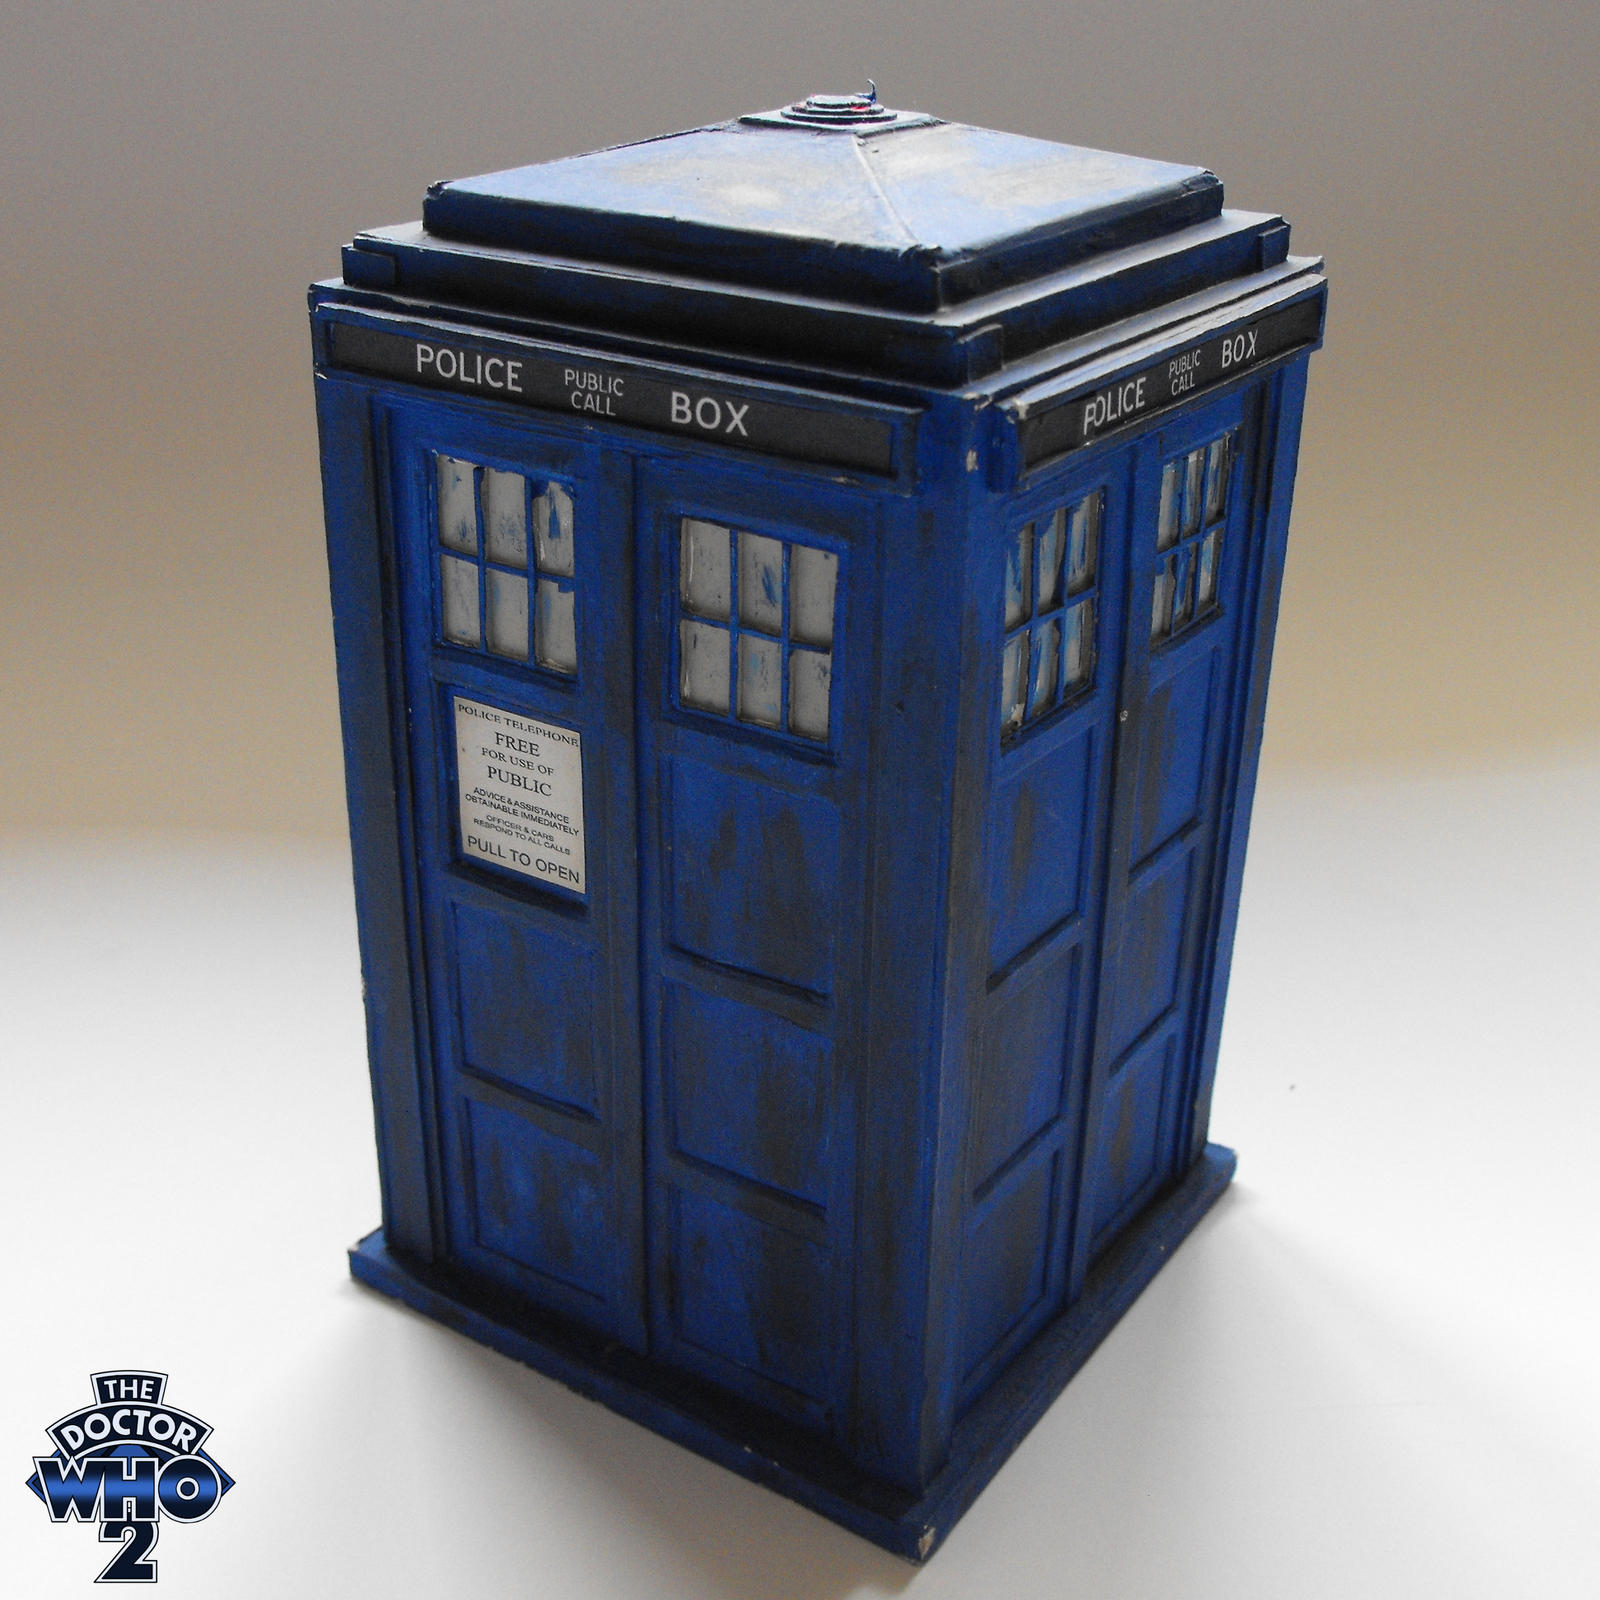 10th Doctor TARDIS Model (2008 Build) by theDoctorWHO2 on DeviantArt